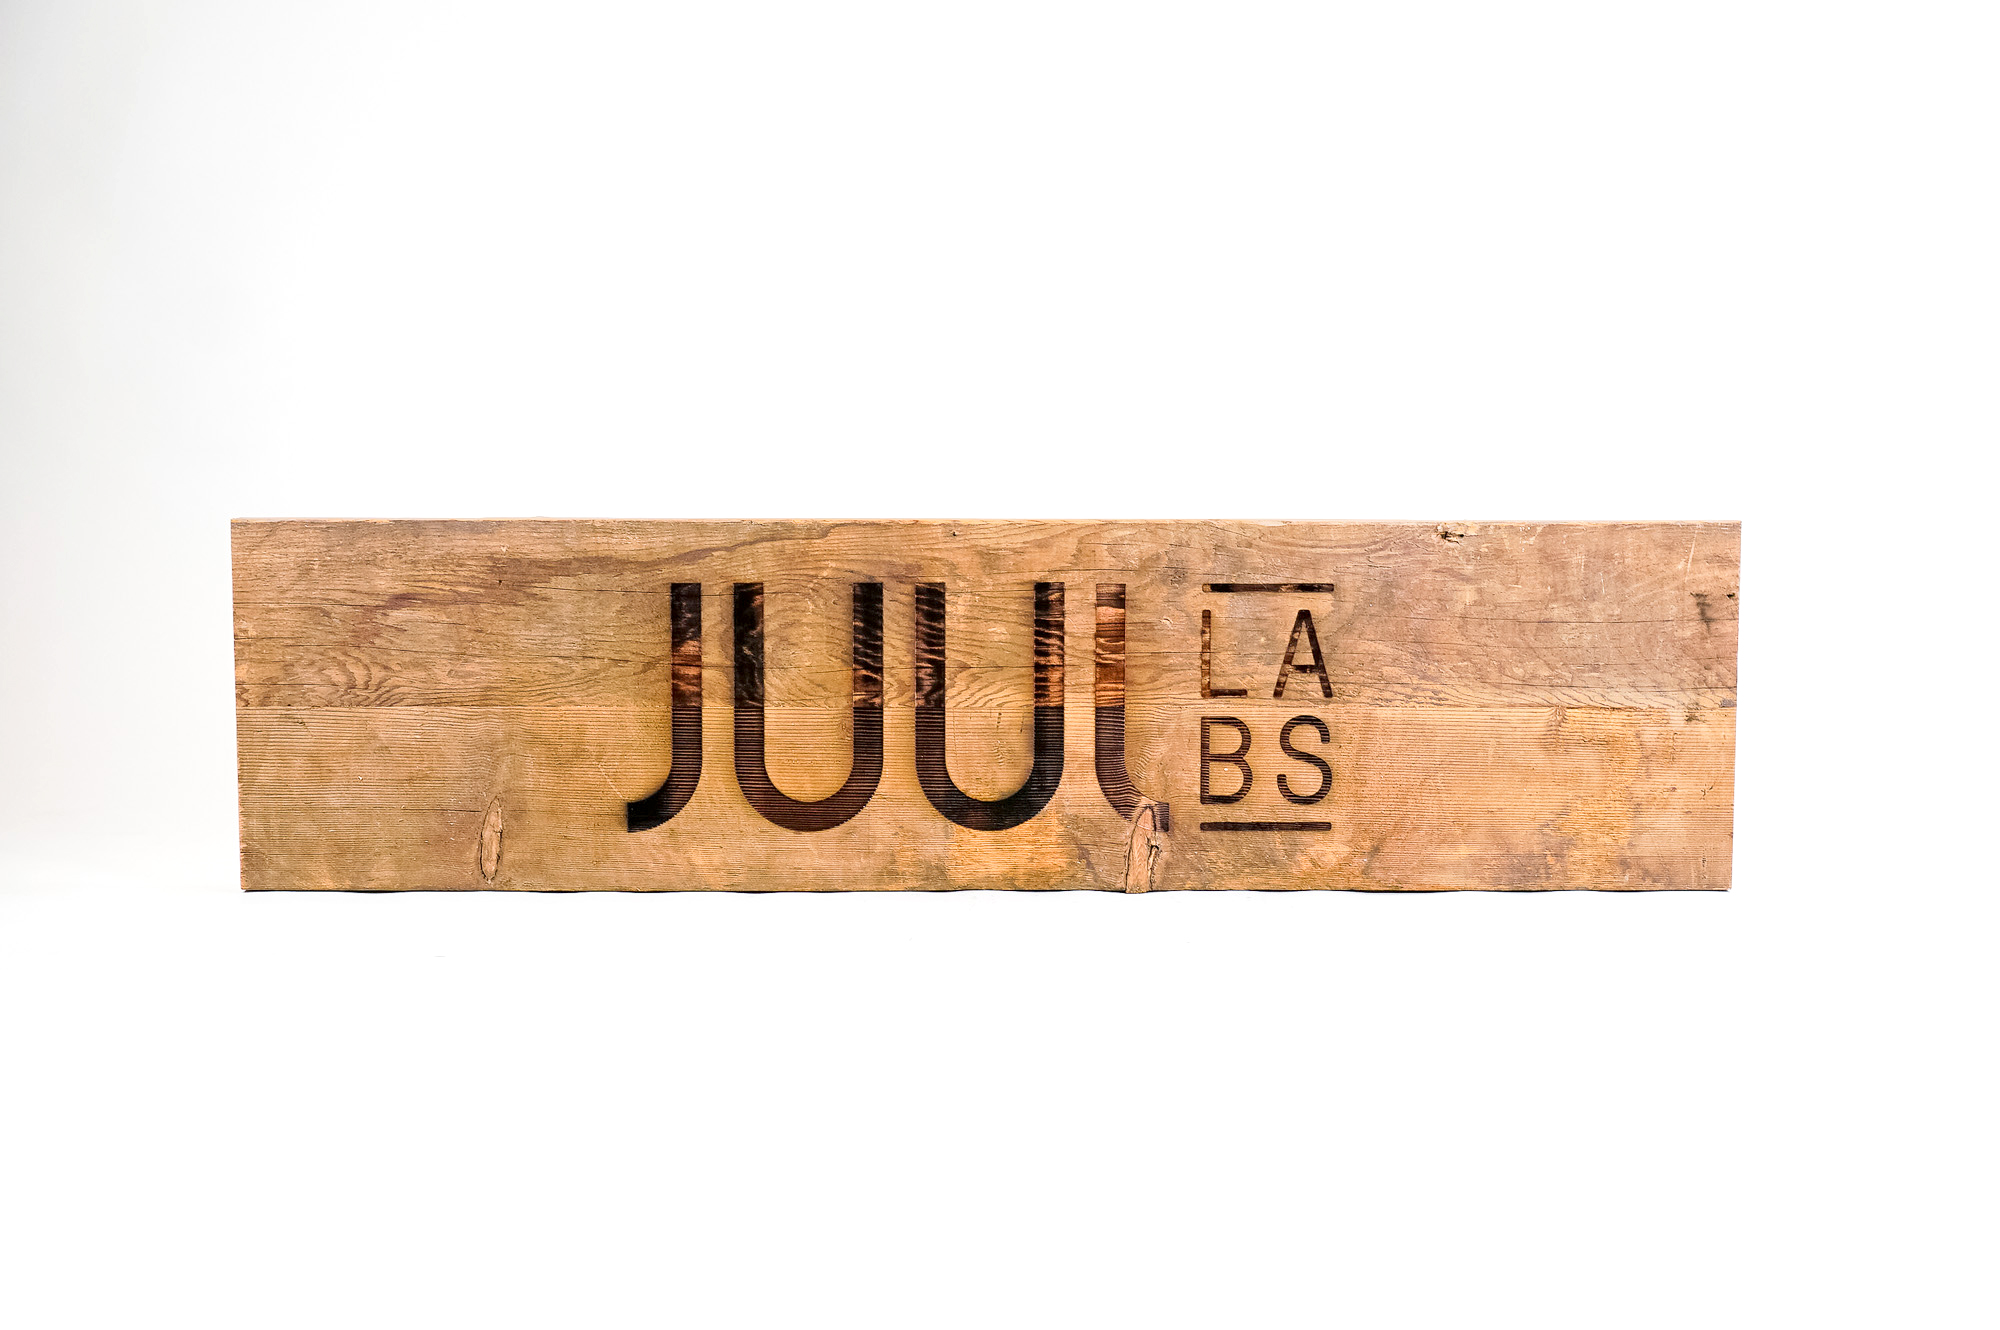 Reclaimed wood sign with etched logo for the San Francisco office of Juul, an electronic cigarette company.